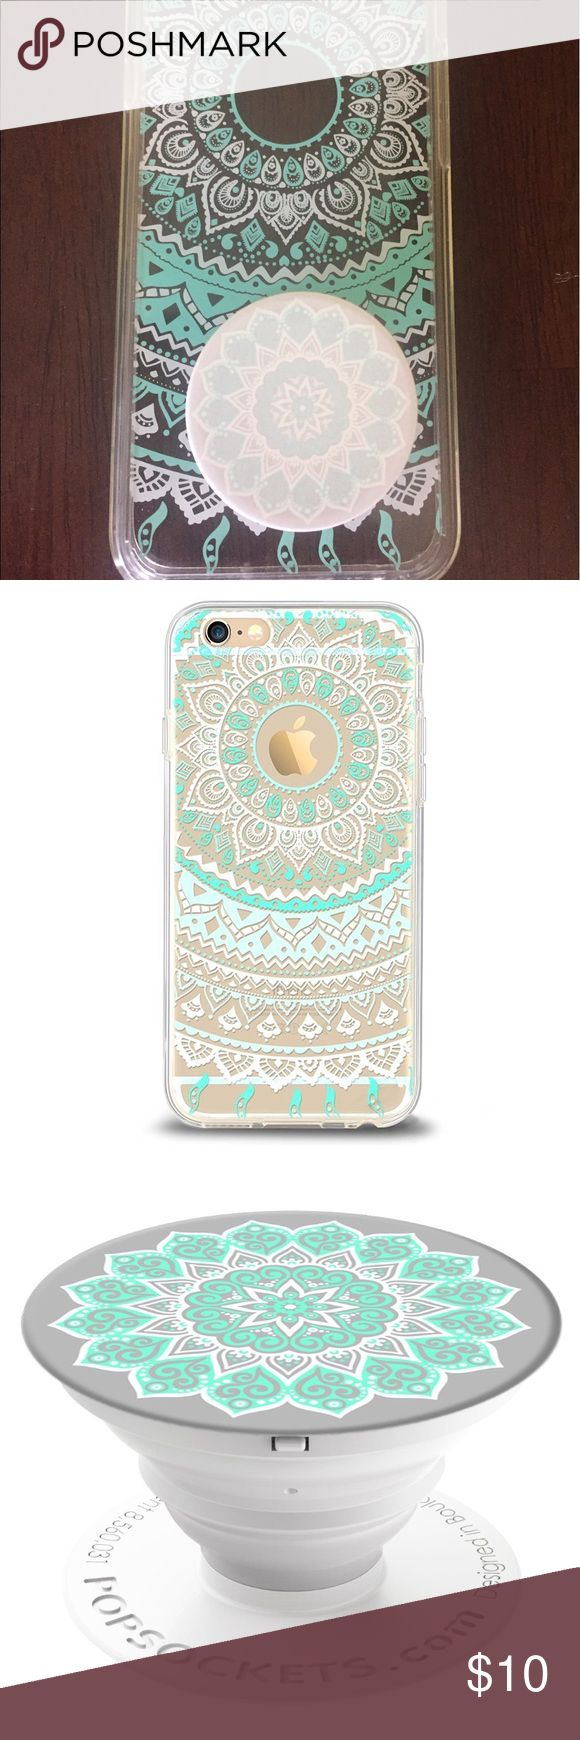 iPhone 6 case with popsocket Practically brand new IPhone 6 case with popsocket. Purchased just over a month ago but unfortunately it will not fit my new phone. Great deal and super cute!!! iphone Accessories Phone Cases